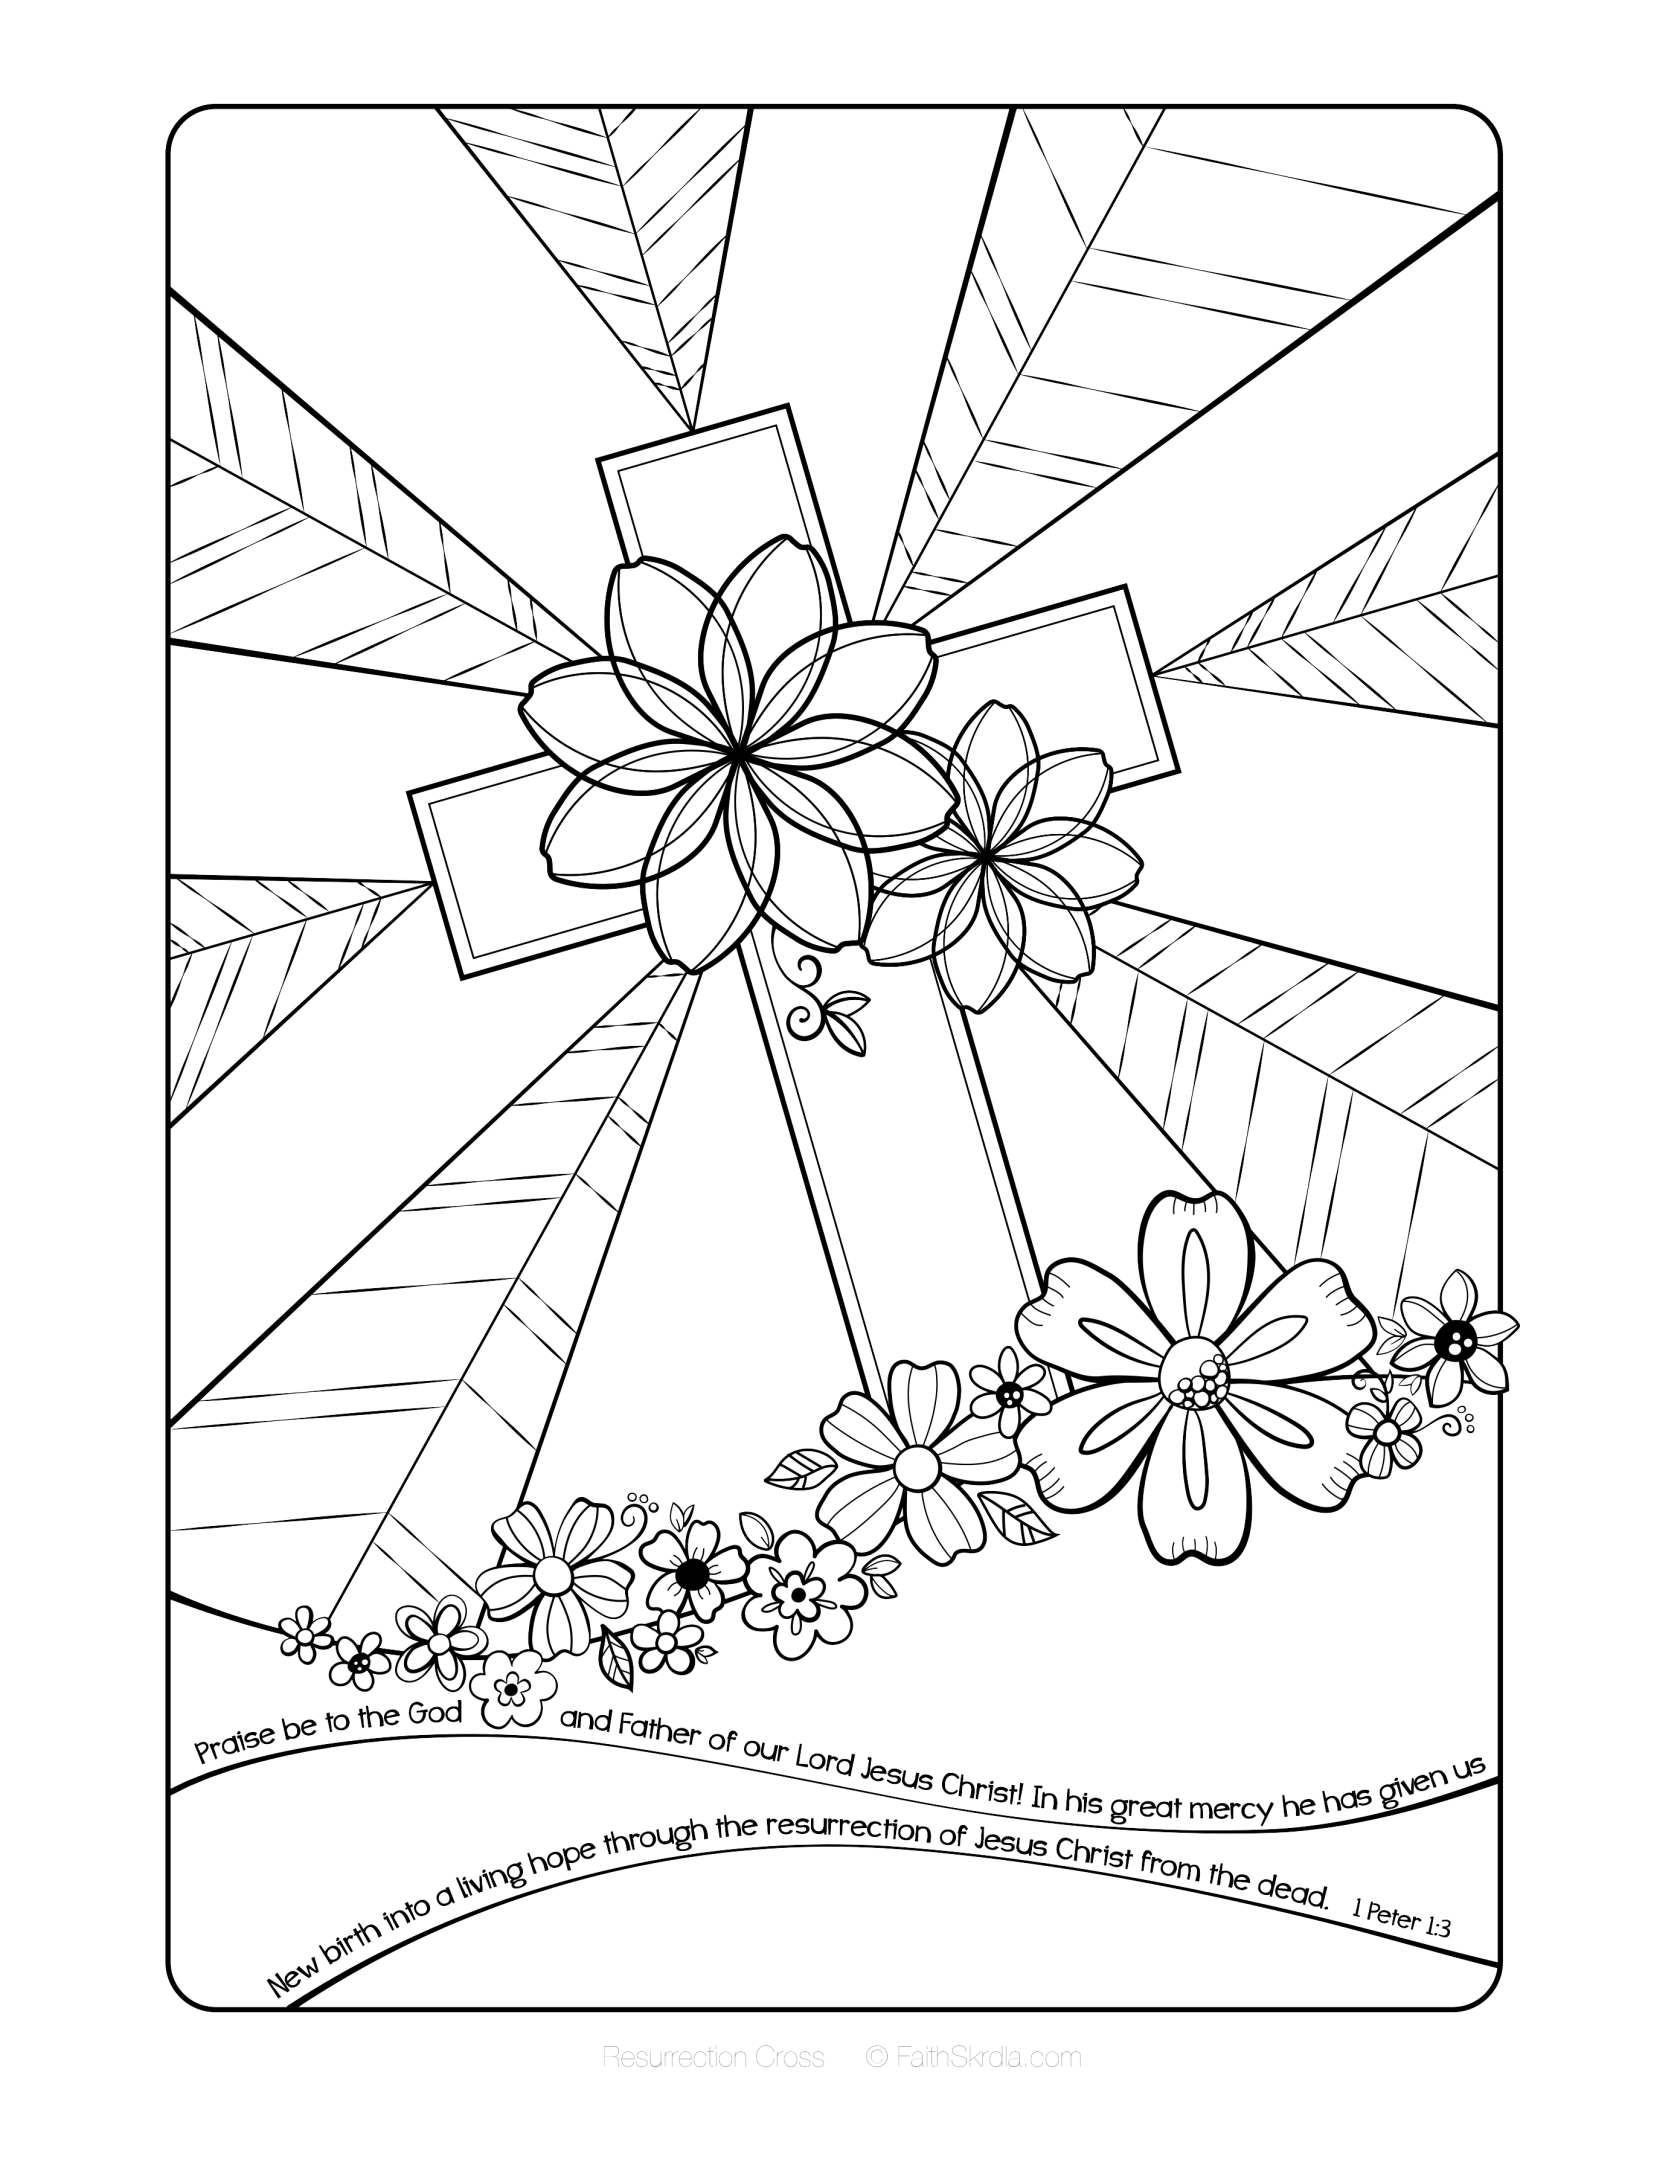 Free Easter Adult Coloring Page By Faith Skrdla Resurrection Cross 1 Peter 13 Bible Verse